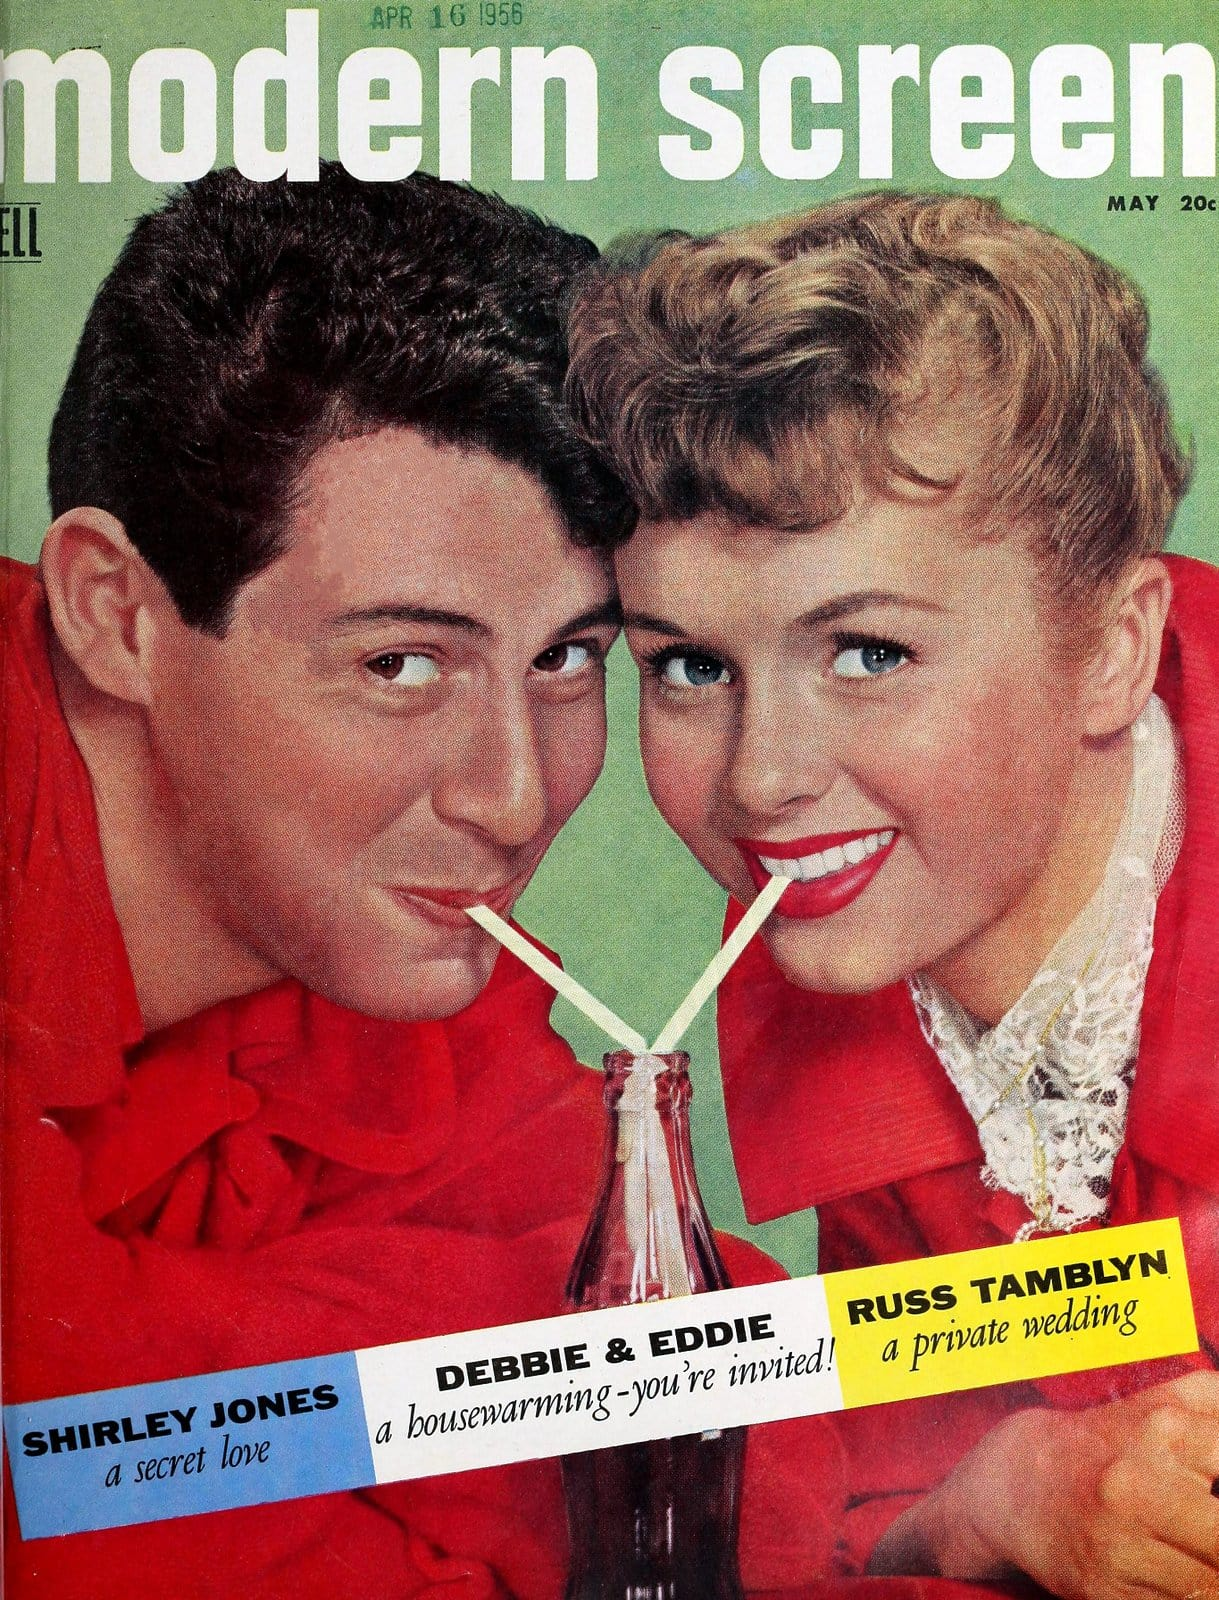 Eddie Fisher and Debbie Reynolds on the cover of Modern Screen magazine - May 1956